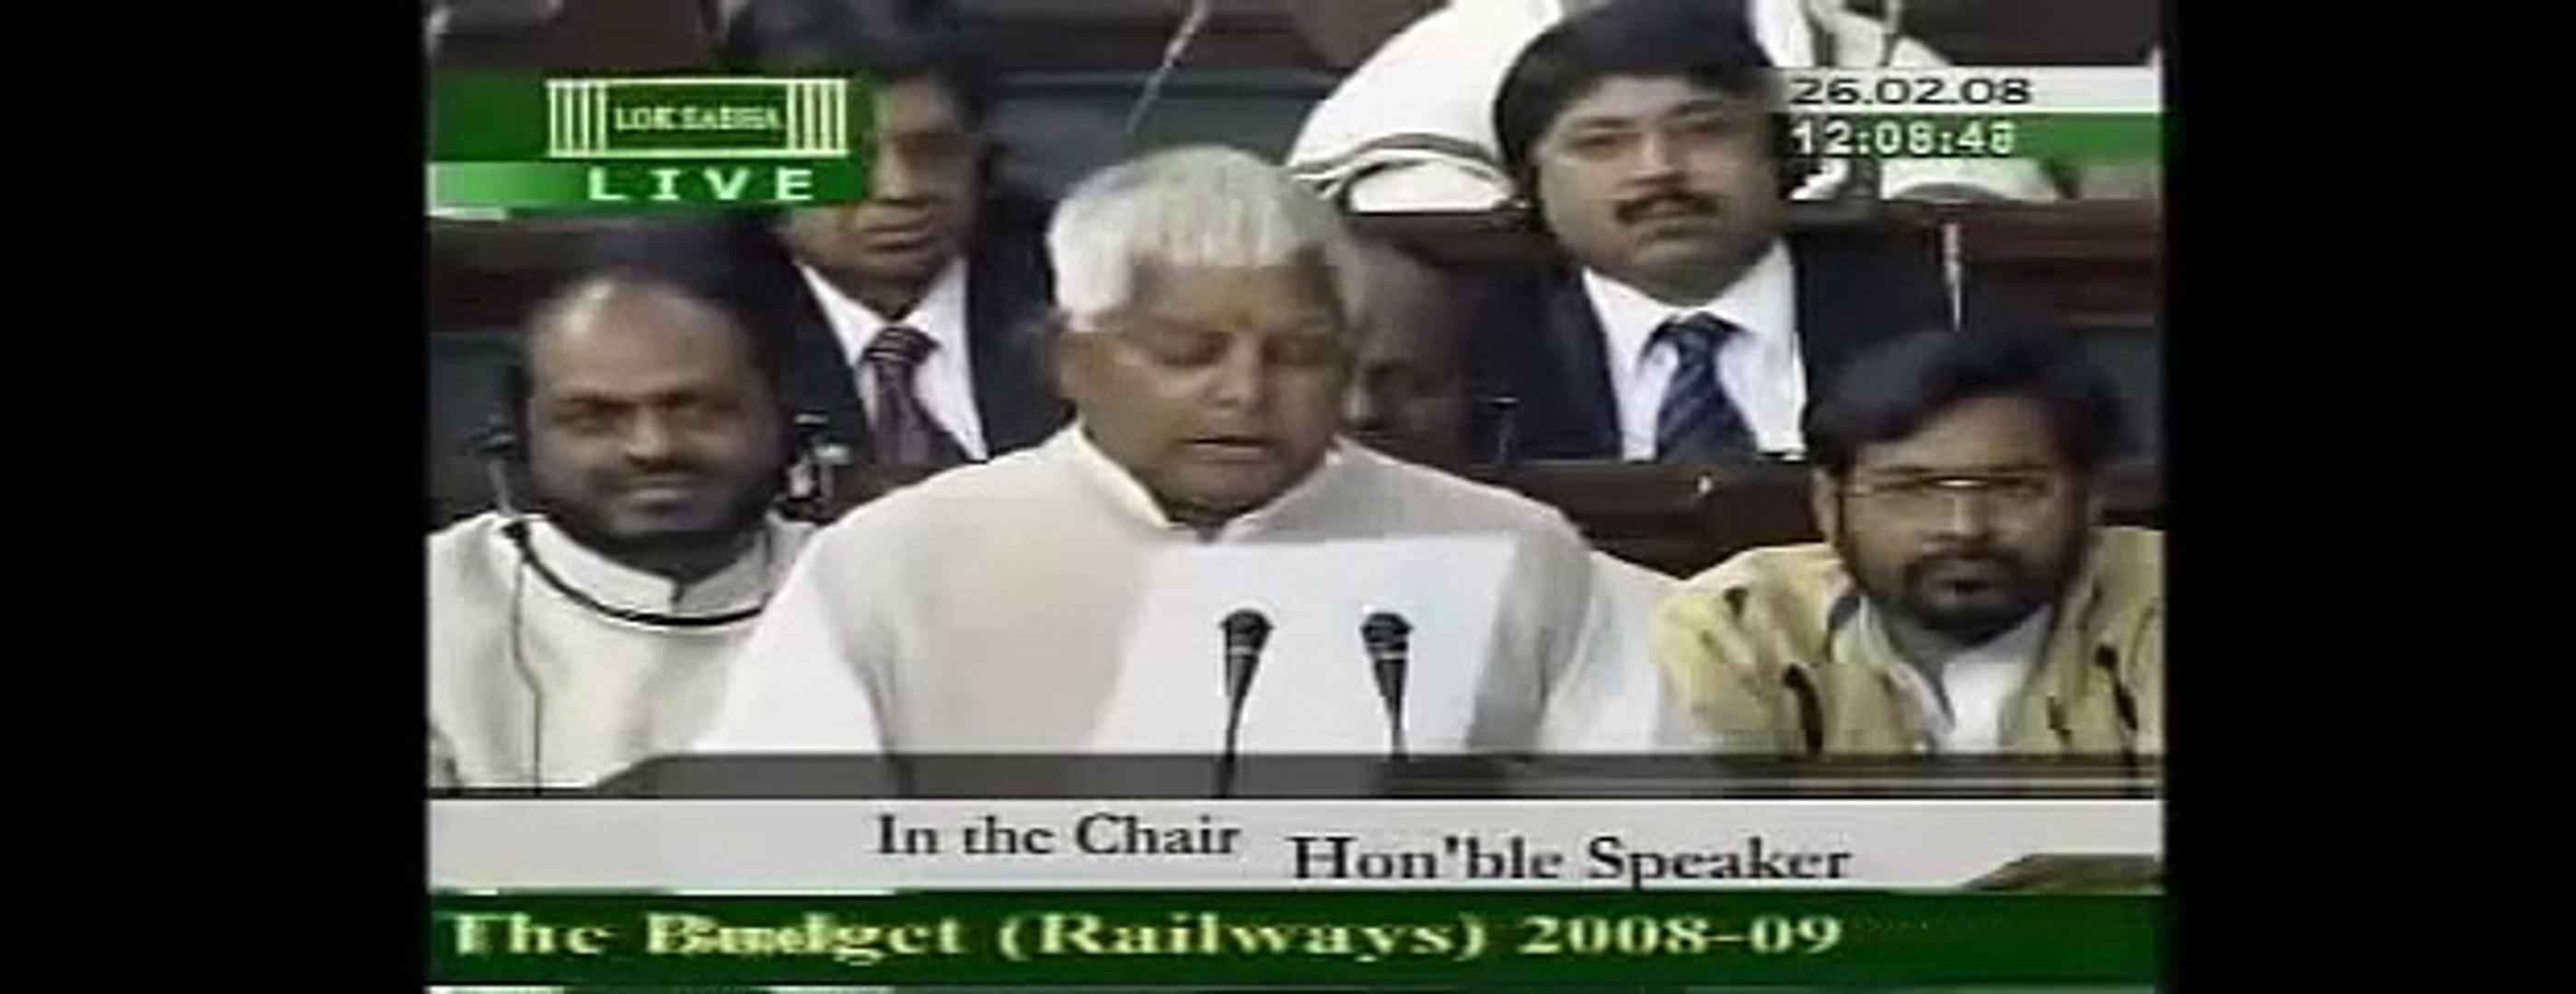 Indian Politics Funny Speech In English Politicians Scandal By News-Cornor